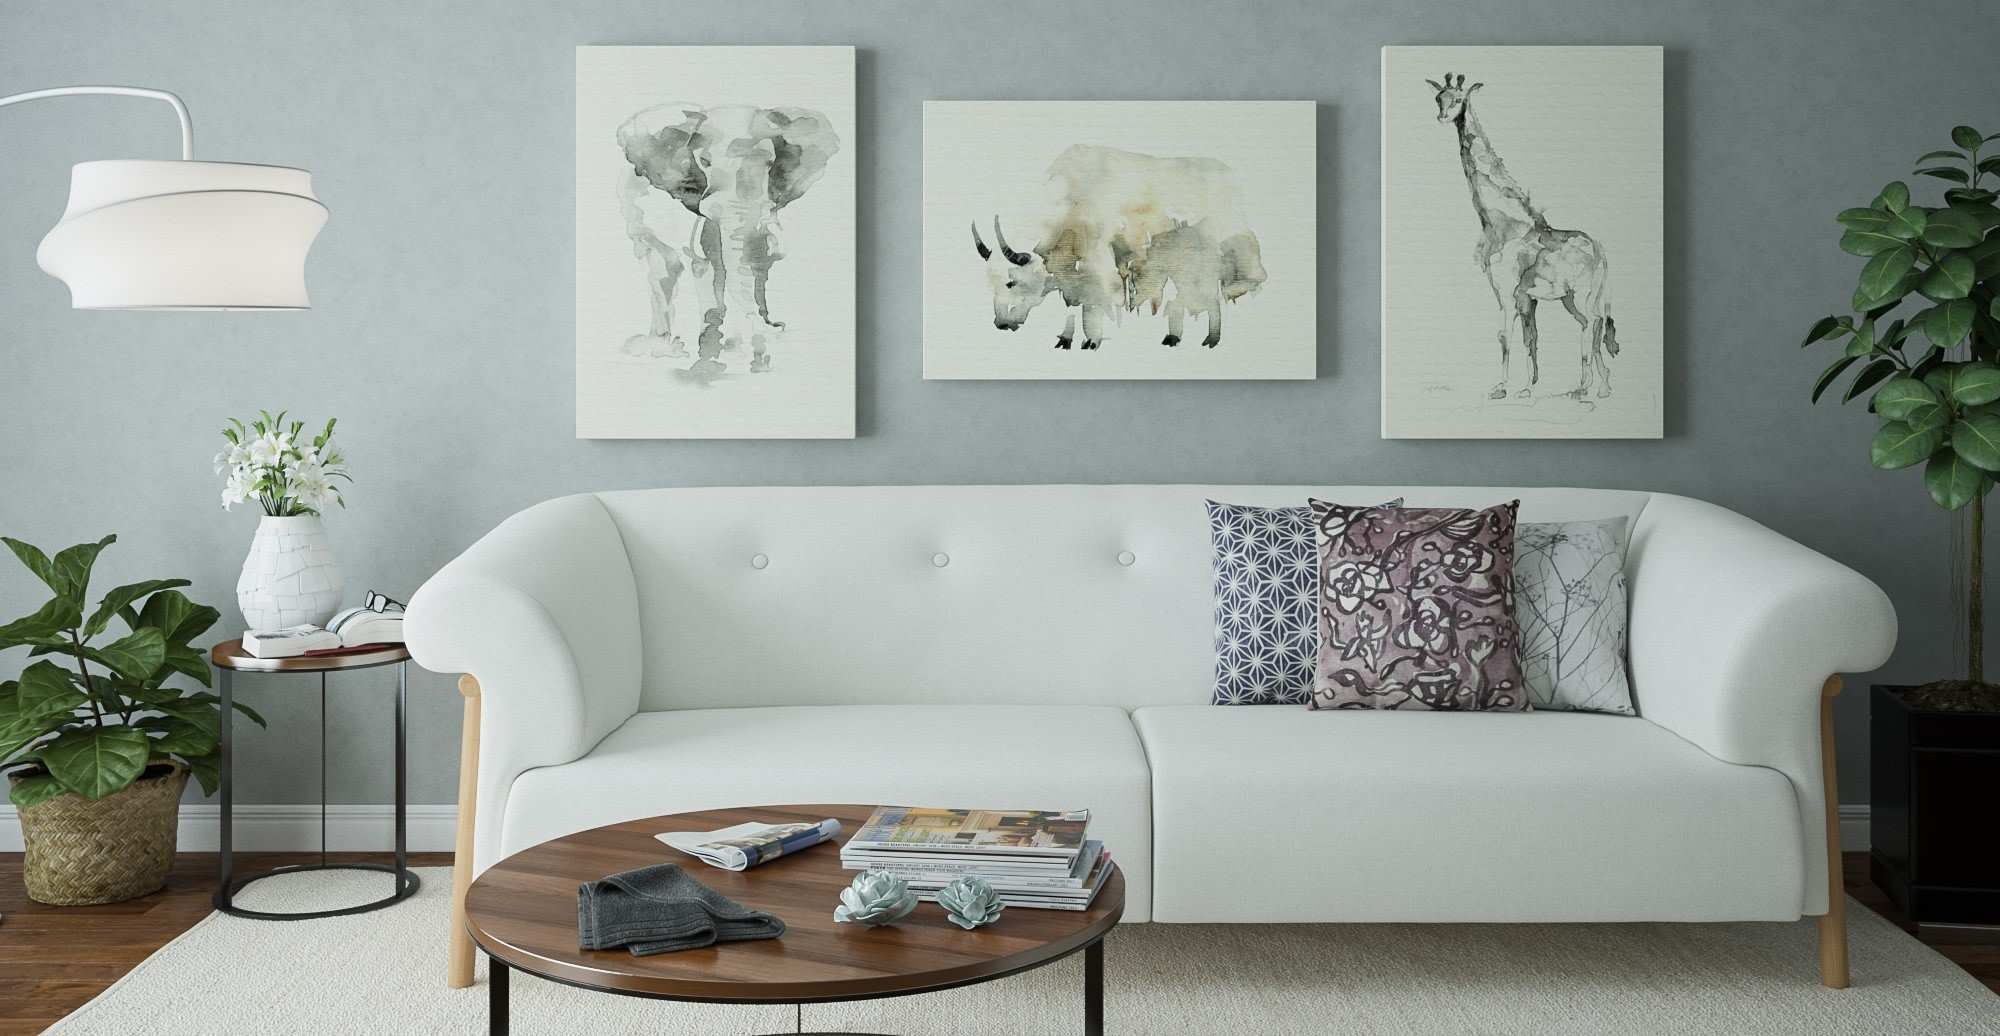 How to Hang Your Wall Art